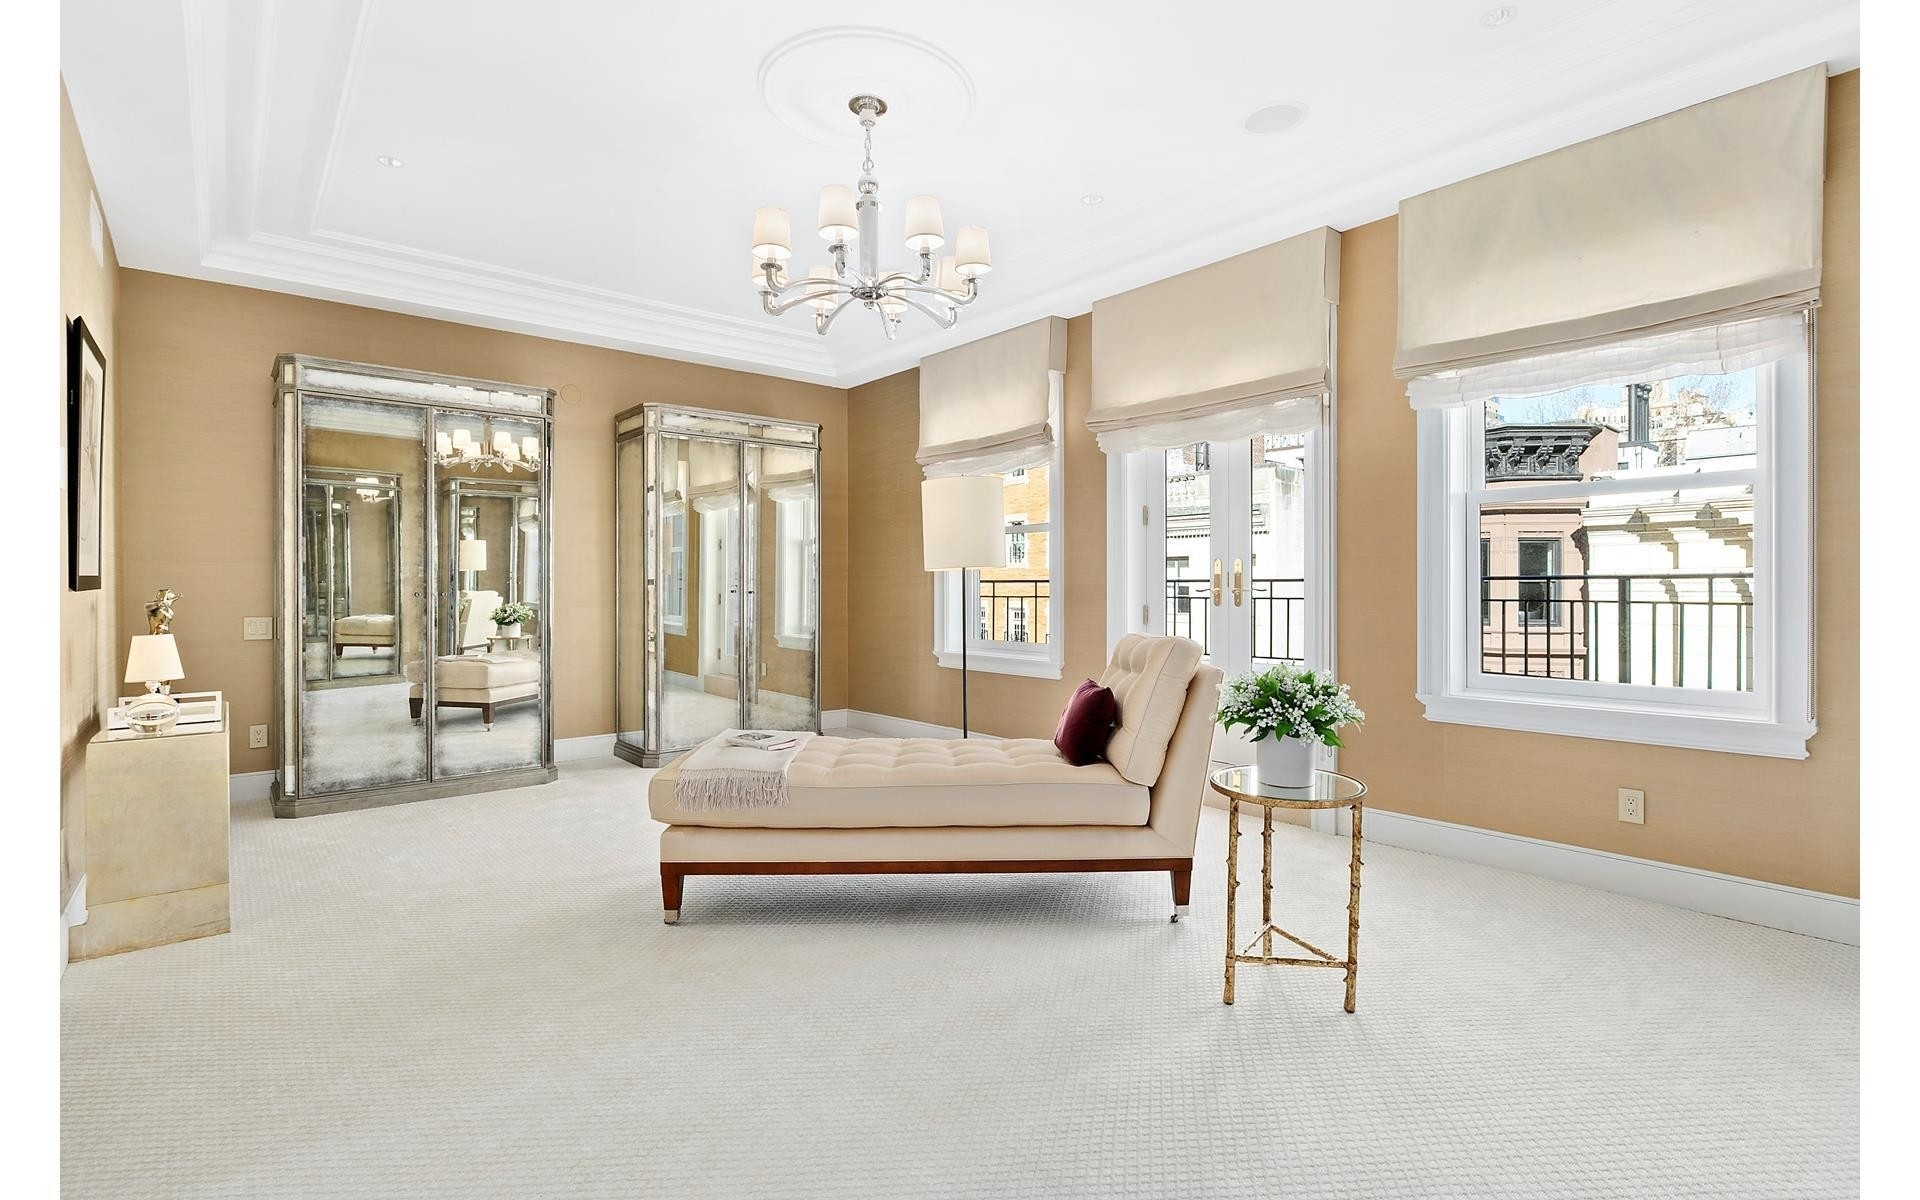 9. Single Family Townhouse for Sale at Lenox Hill, New York, NY 10021